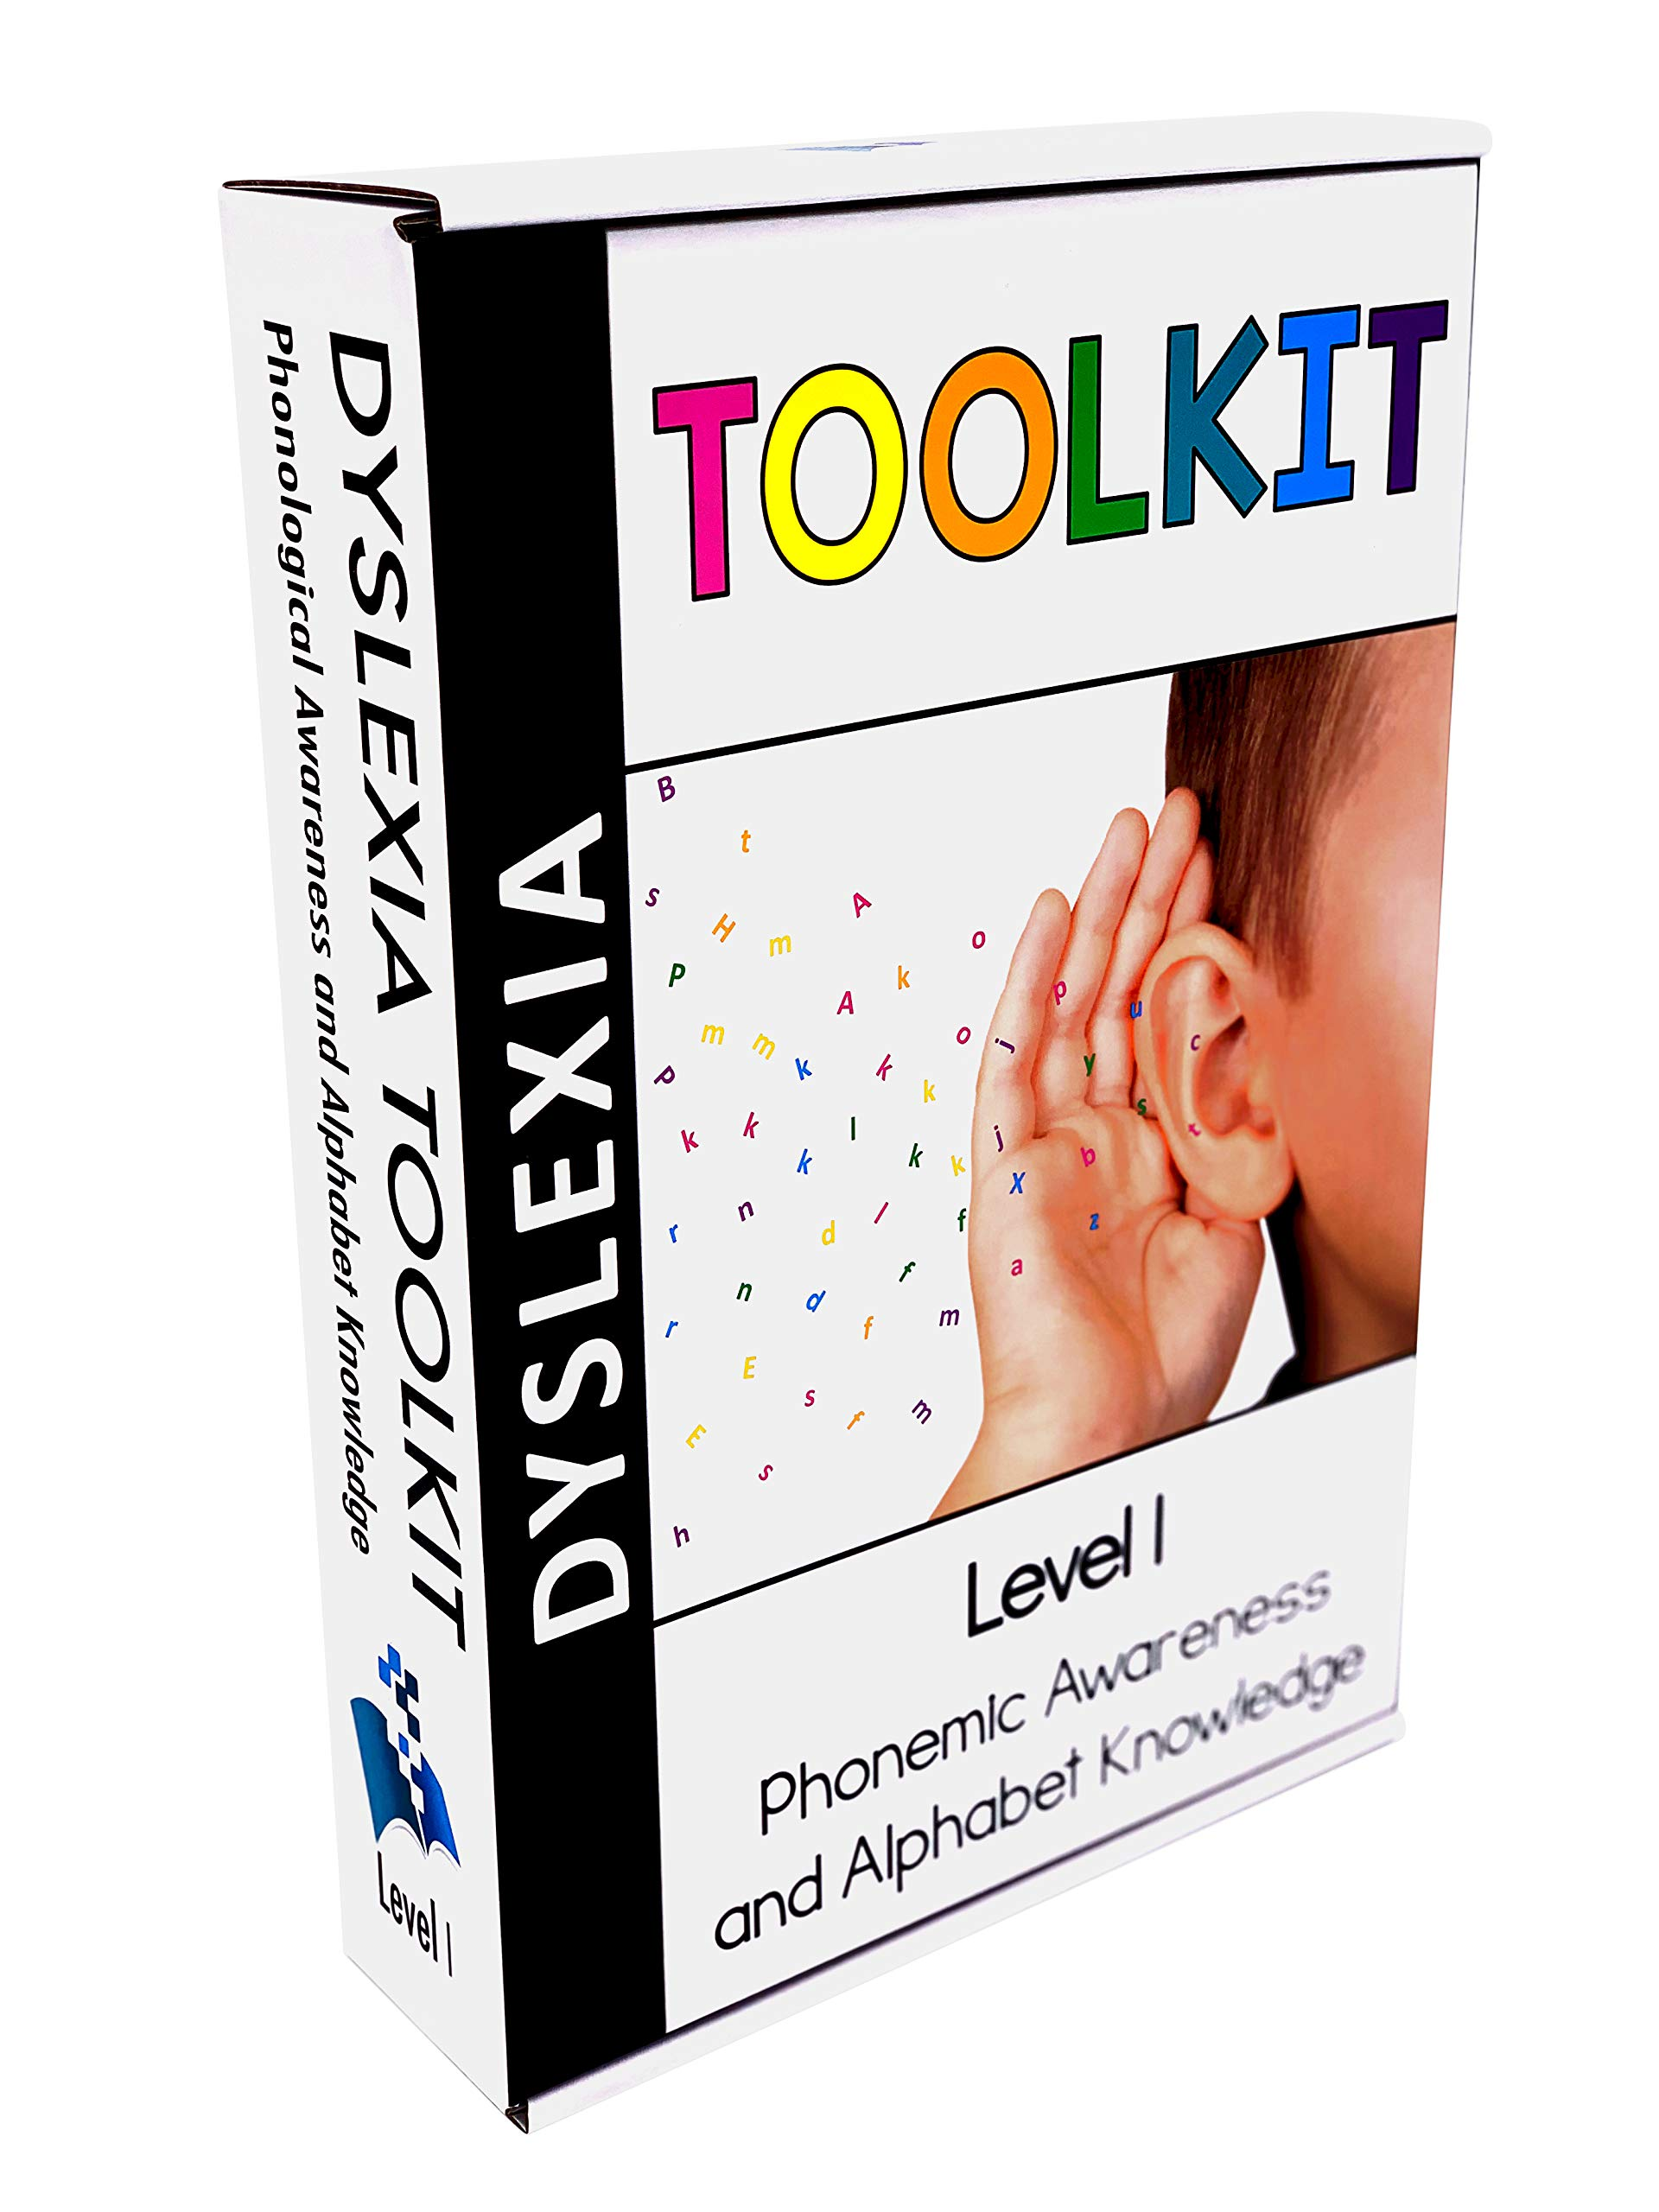 Dyslexia Toolkit | Best Tool Kit for Teaching Kids Phonemic Awareness & Alphabet Knowledge | Flash Cards, Games & Book for Home & School | Preschool, Kindergarten, 1st Grade & Up Reading Curriculum by PDX Reading Specialist